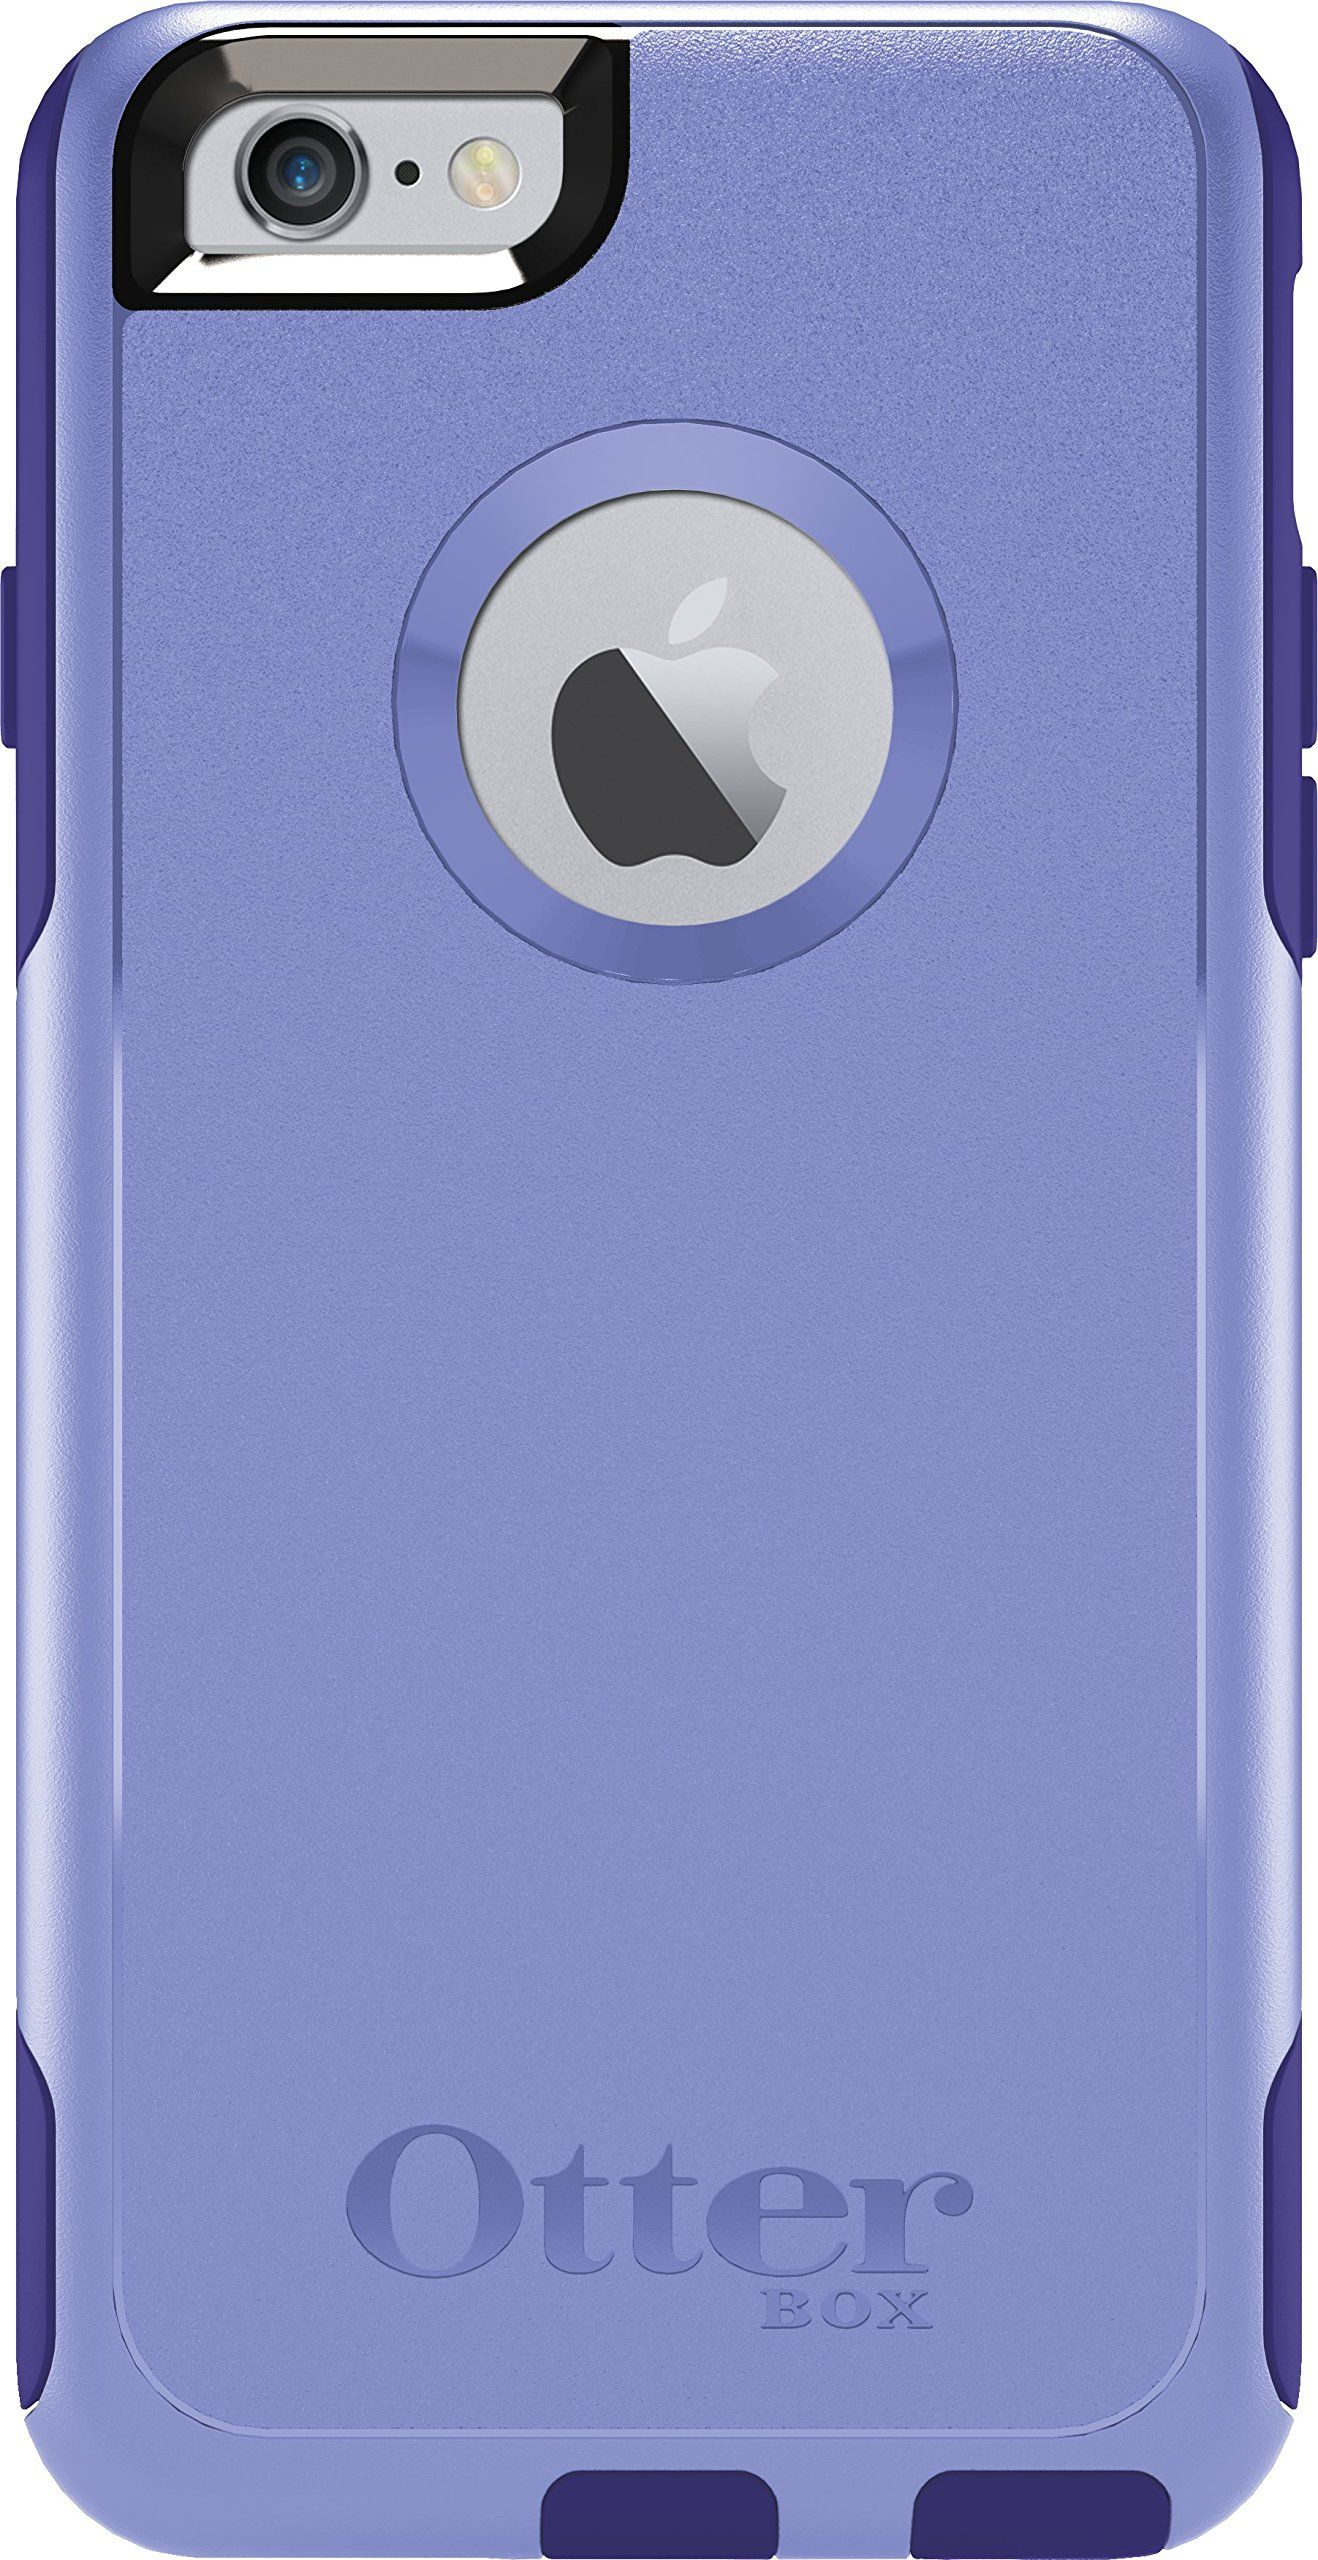 buy popular ff839 4445f Amazon.com: OtterBox COMMUTER iPhone 6/6s Case - Frustration-Free ...